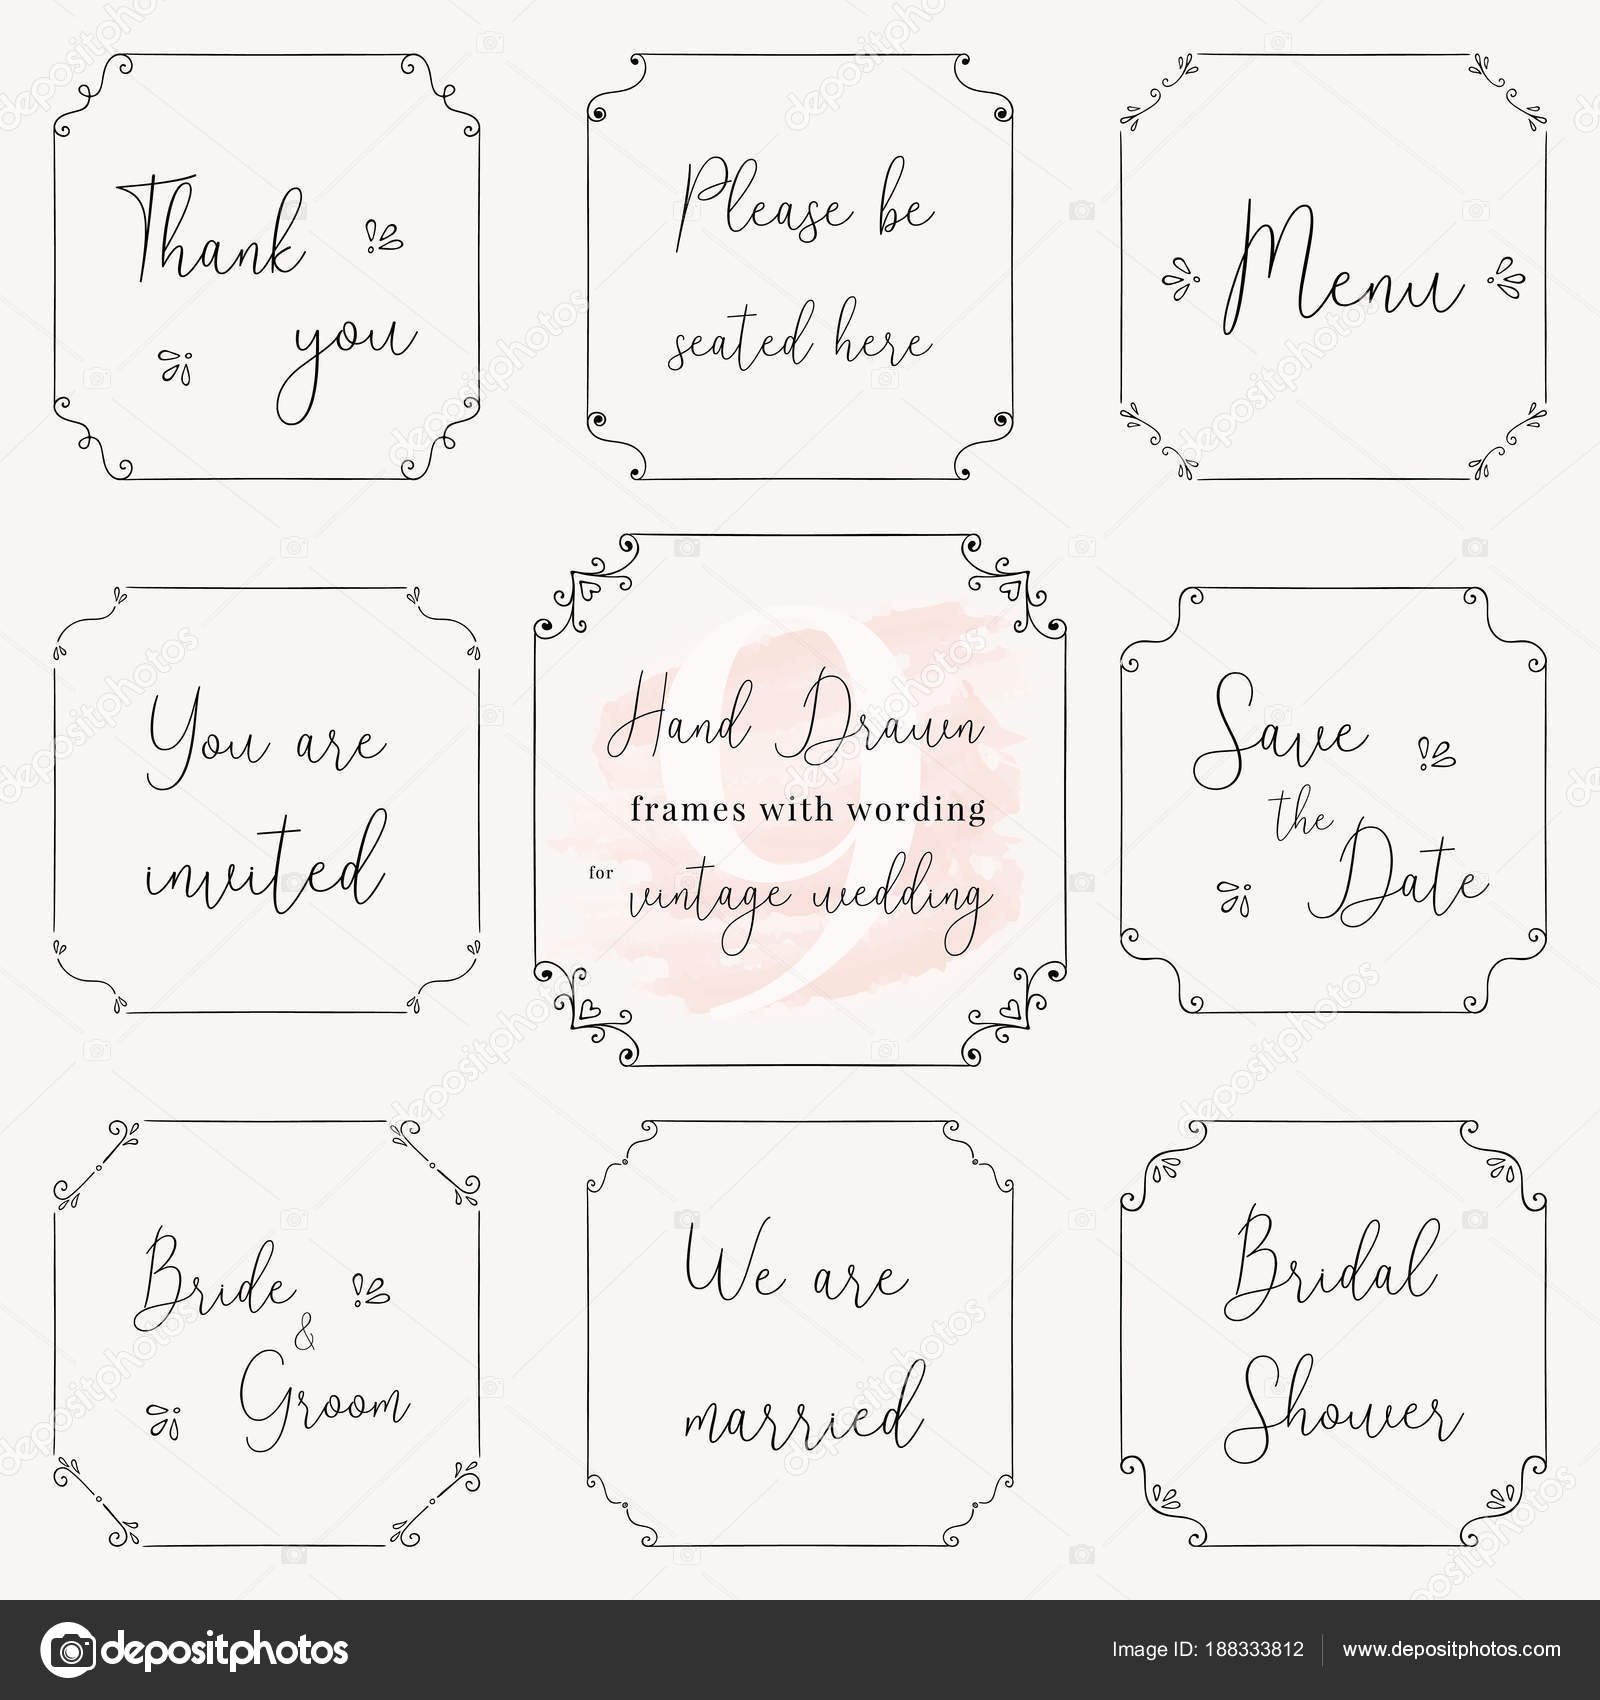 Hand drawn frame doodle vintage wedding frame vector design vintage wedding frame vector design templates vintage frame vector clip art with wedding words stopboris Image collections